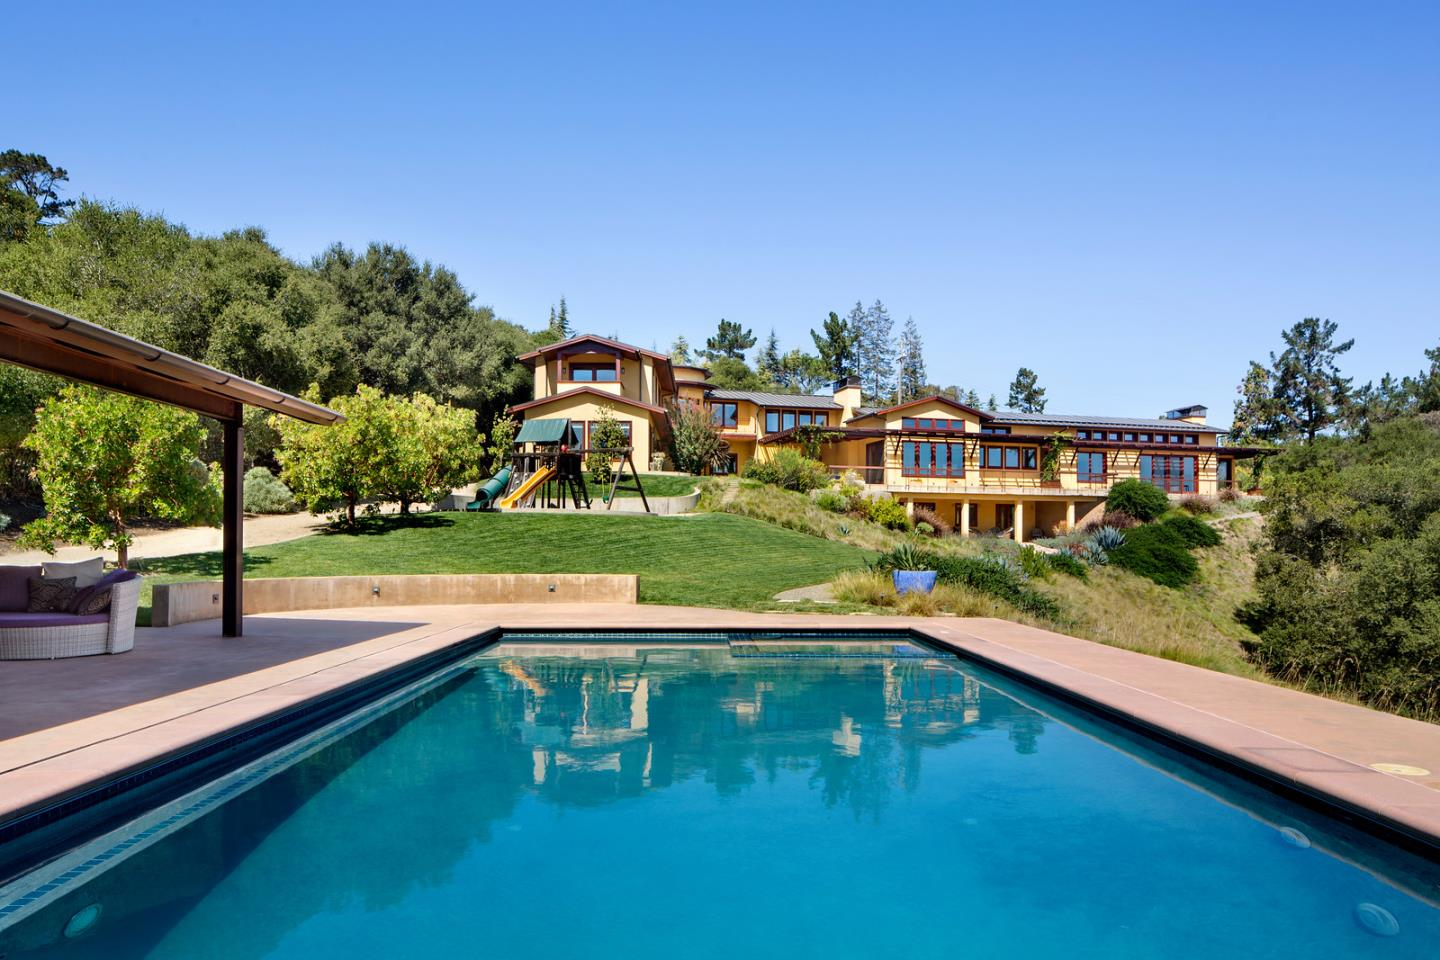 Single Family Home for Sale at 150 Alamos Road Portola Valley, California 94028 United States